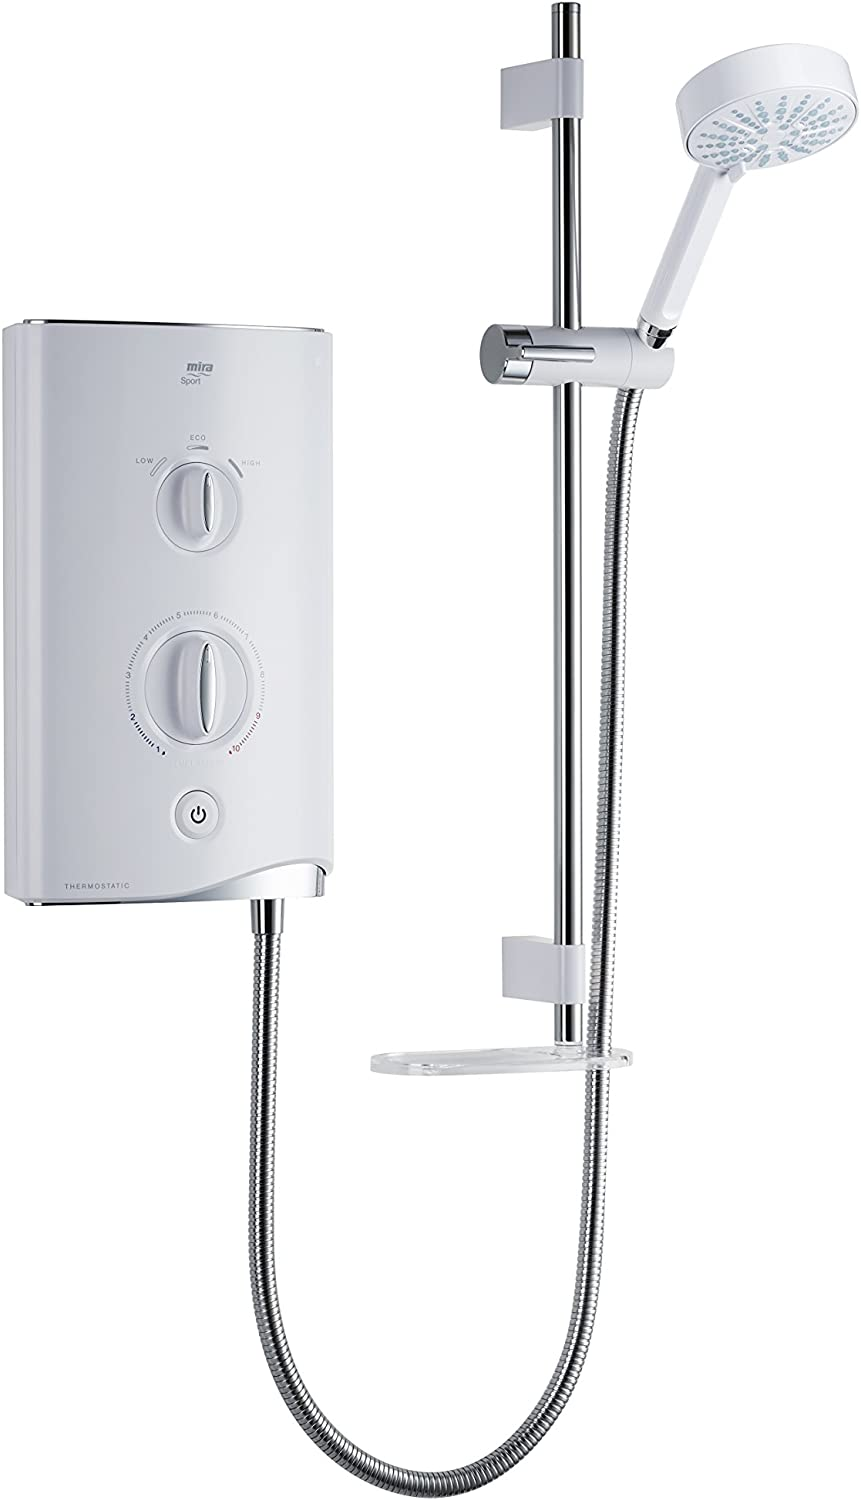 Mira Showers 1.1746.006 Sport 9.8 kW Thermostatic Electric Shower - White/Chrome